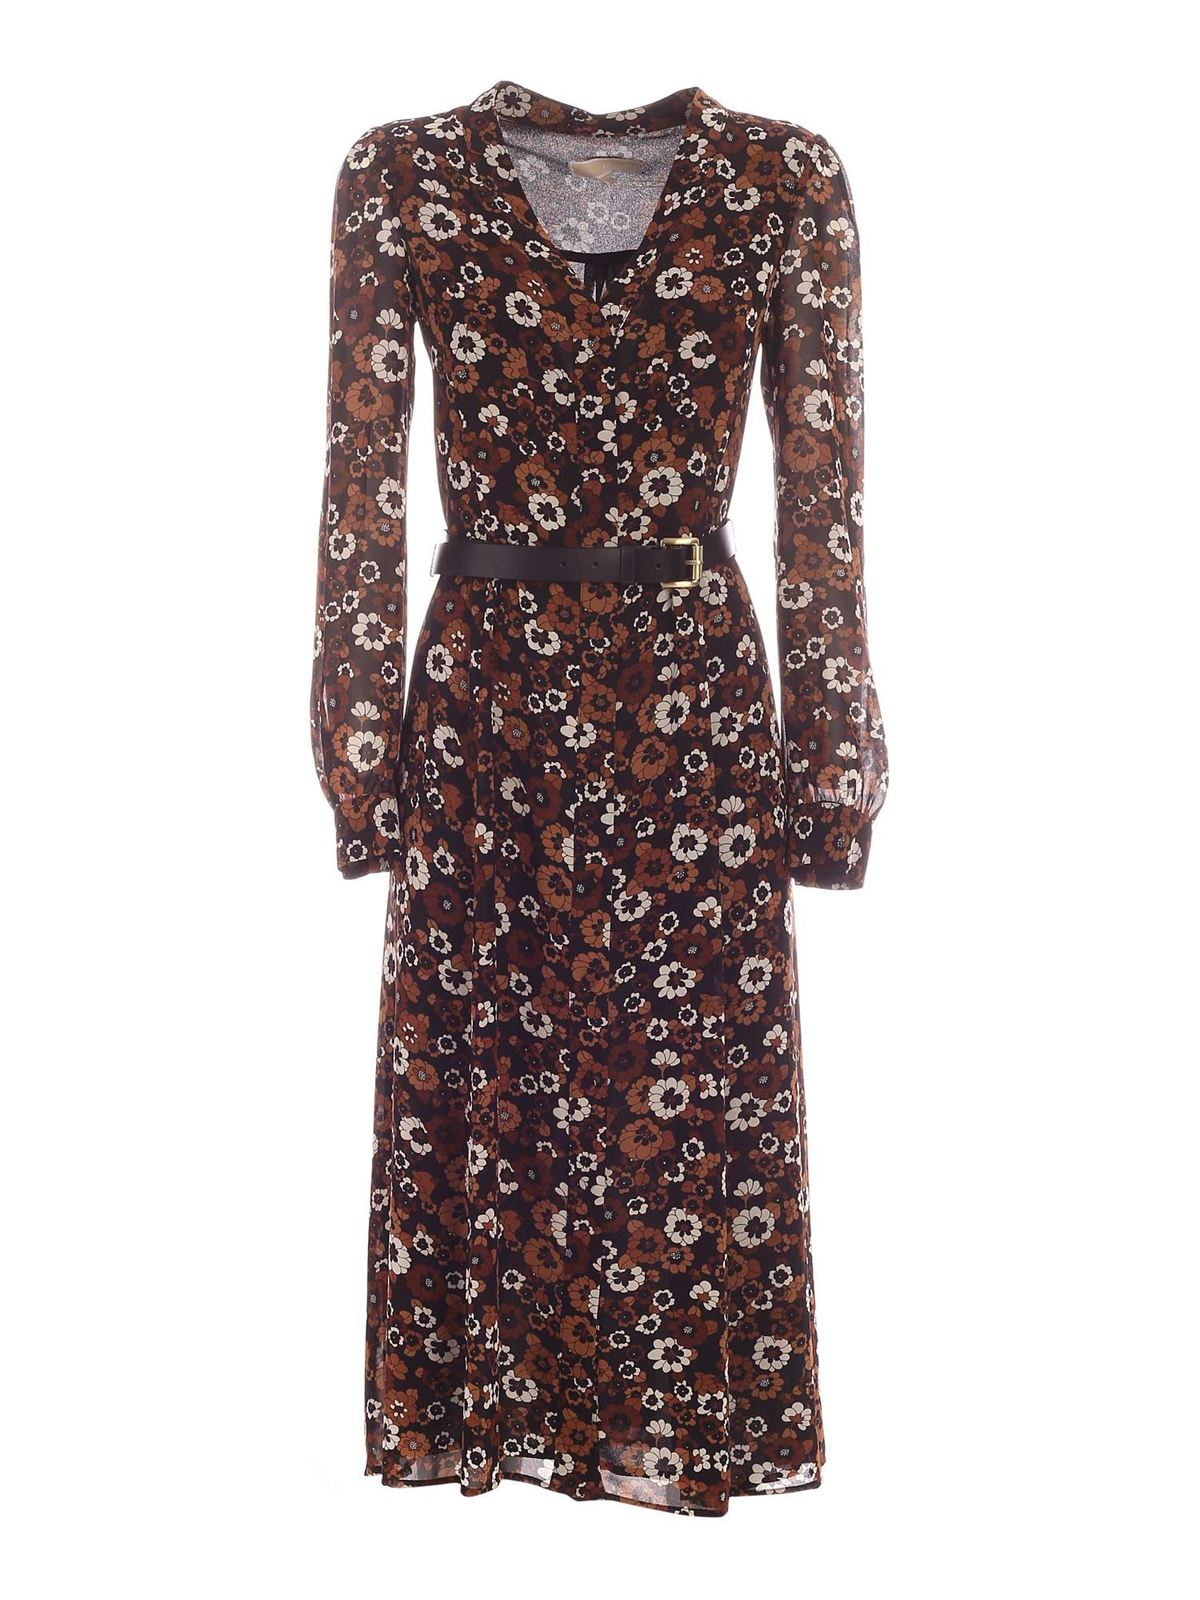 Michael Kors FLORAL PRINT LONG DRESS IN BLACK AND BROWN